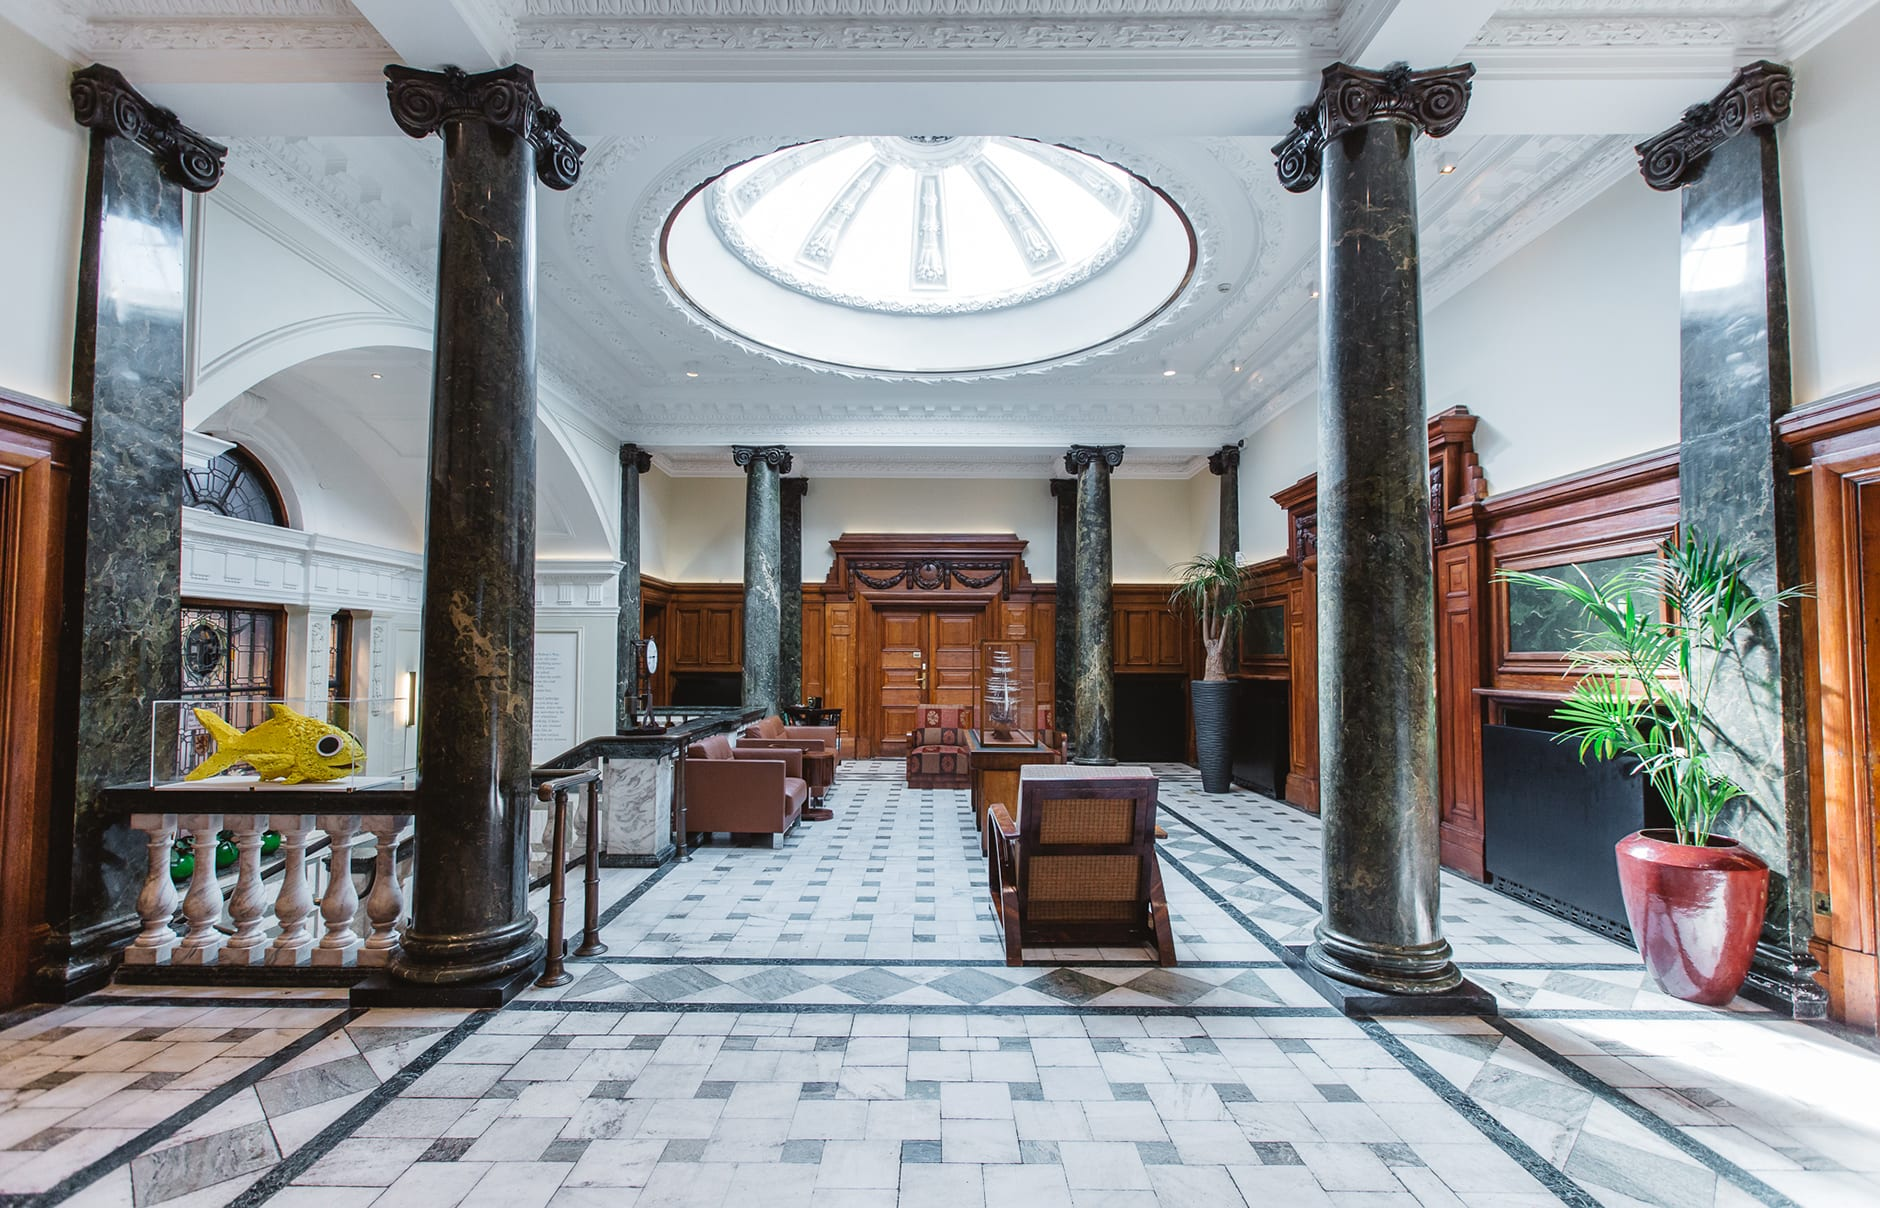 Town Hall Hotel & Apartments, London, UK. Hotel Review by TravelPlusStyle. Photo © Town Hall Hotel